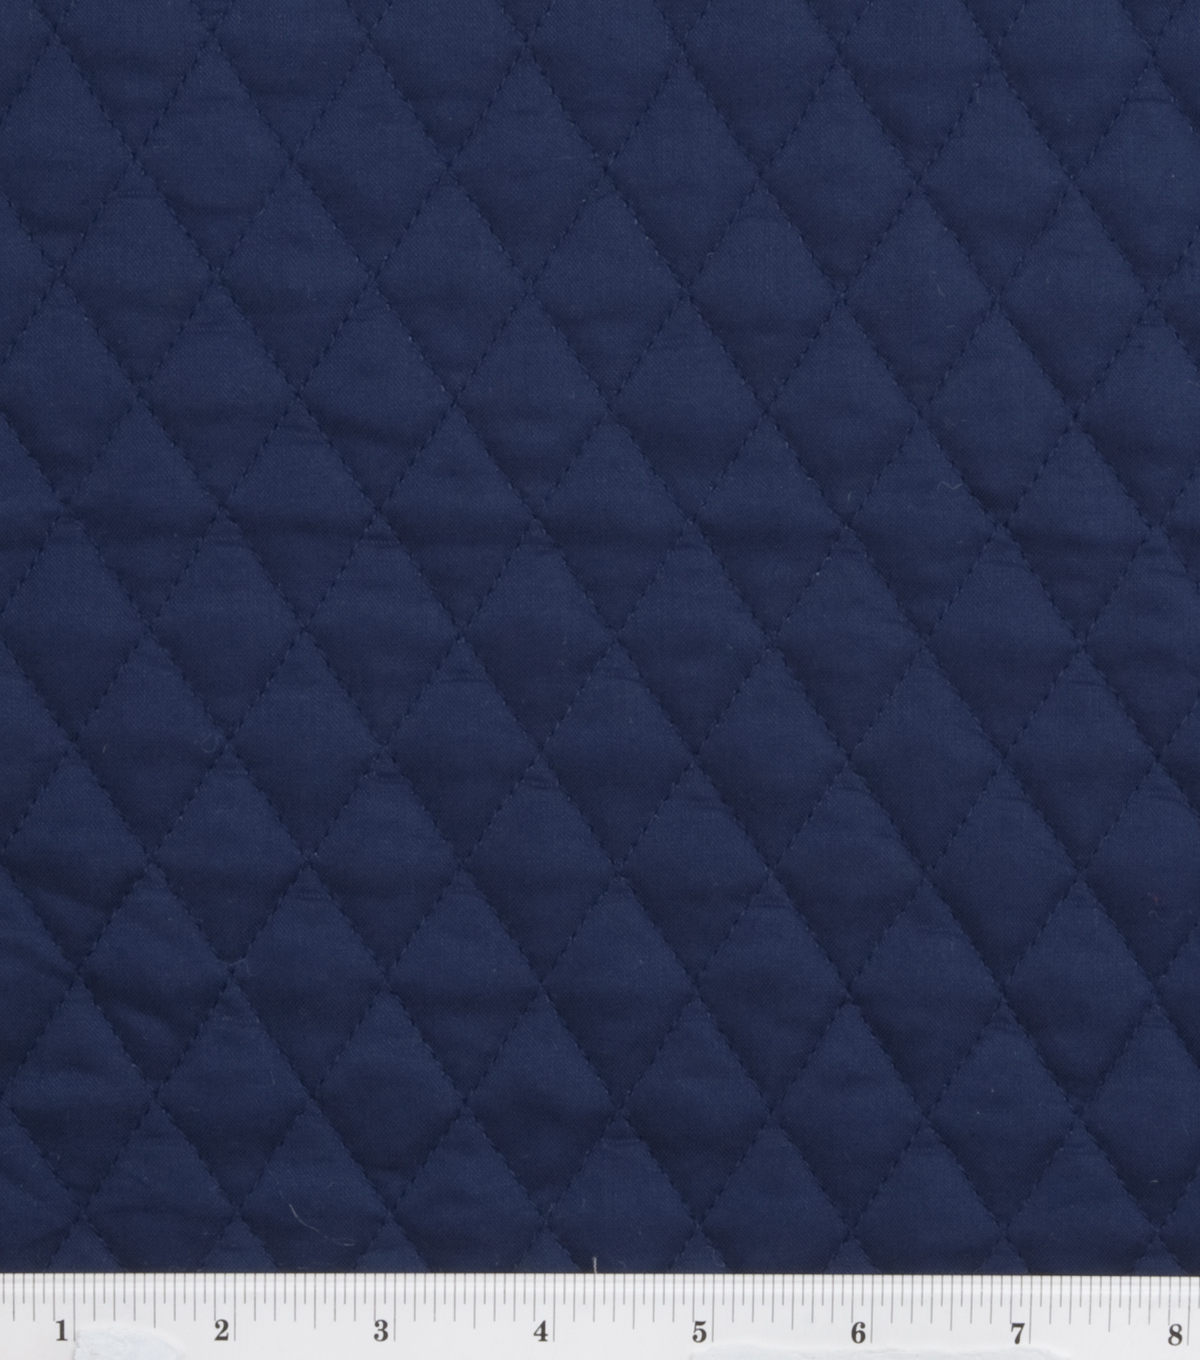 Double Faced Pre-Quilted Cotton Fabric -Diamond Solids, Navy